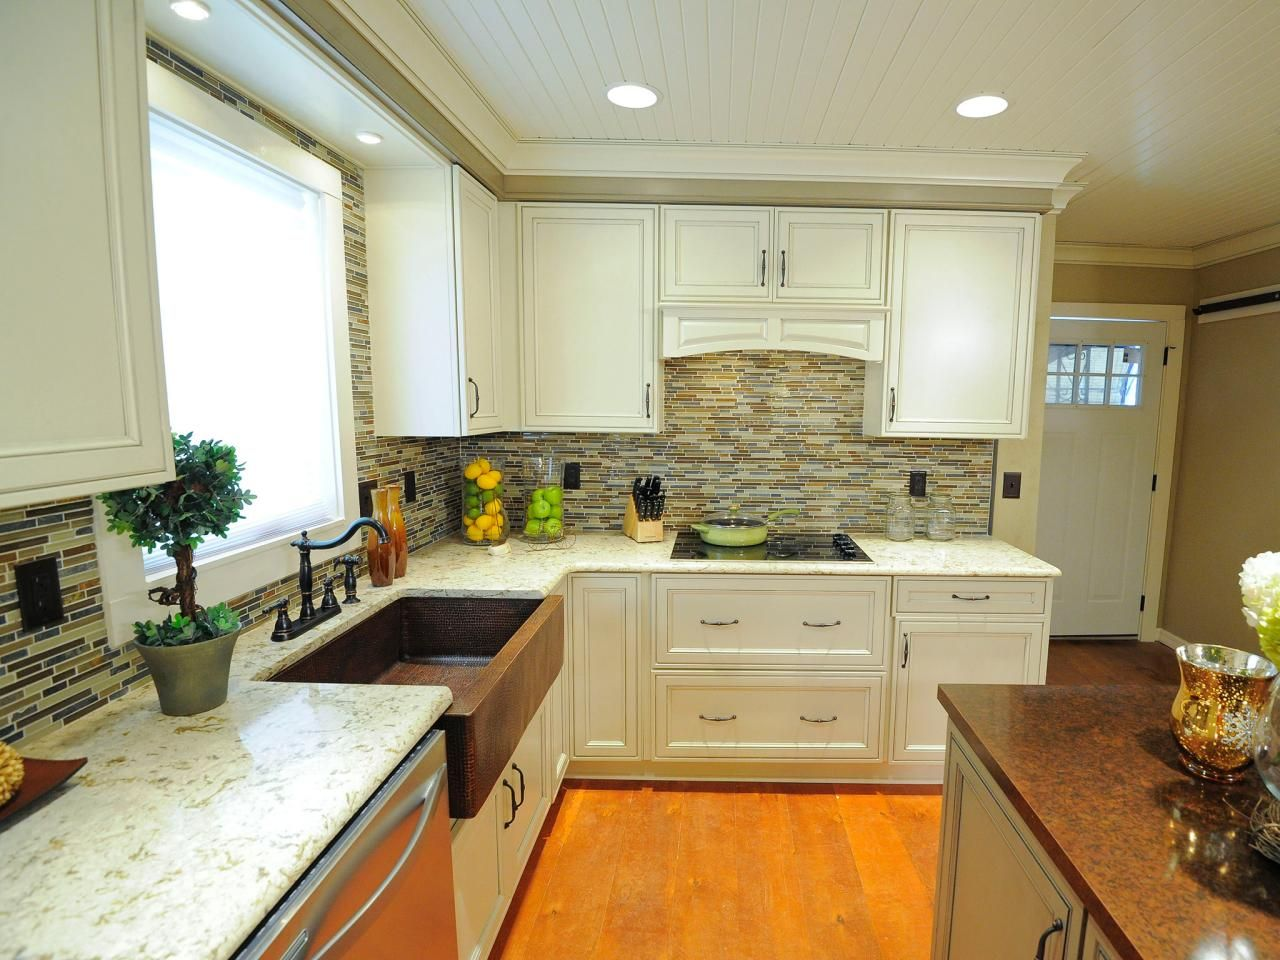 Kitchen Countertops: Beautiful, Functional Design Options ...